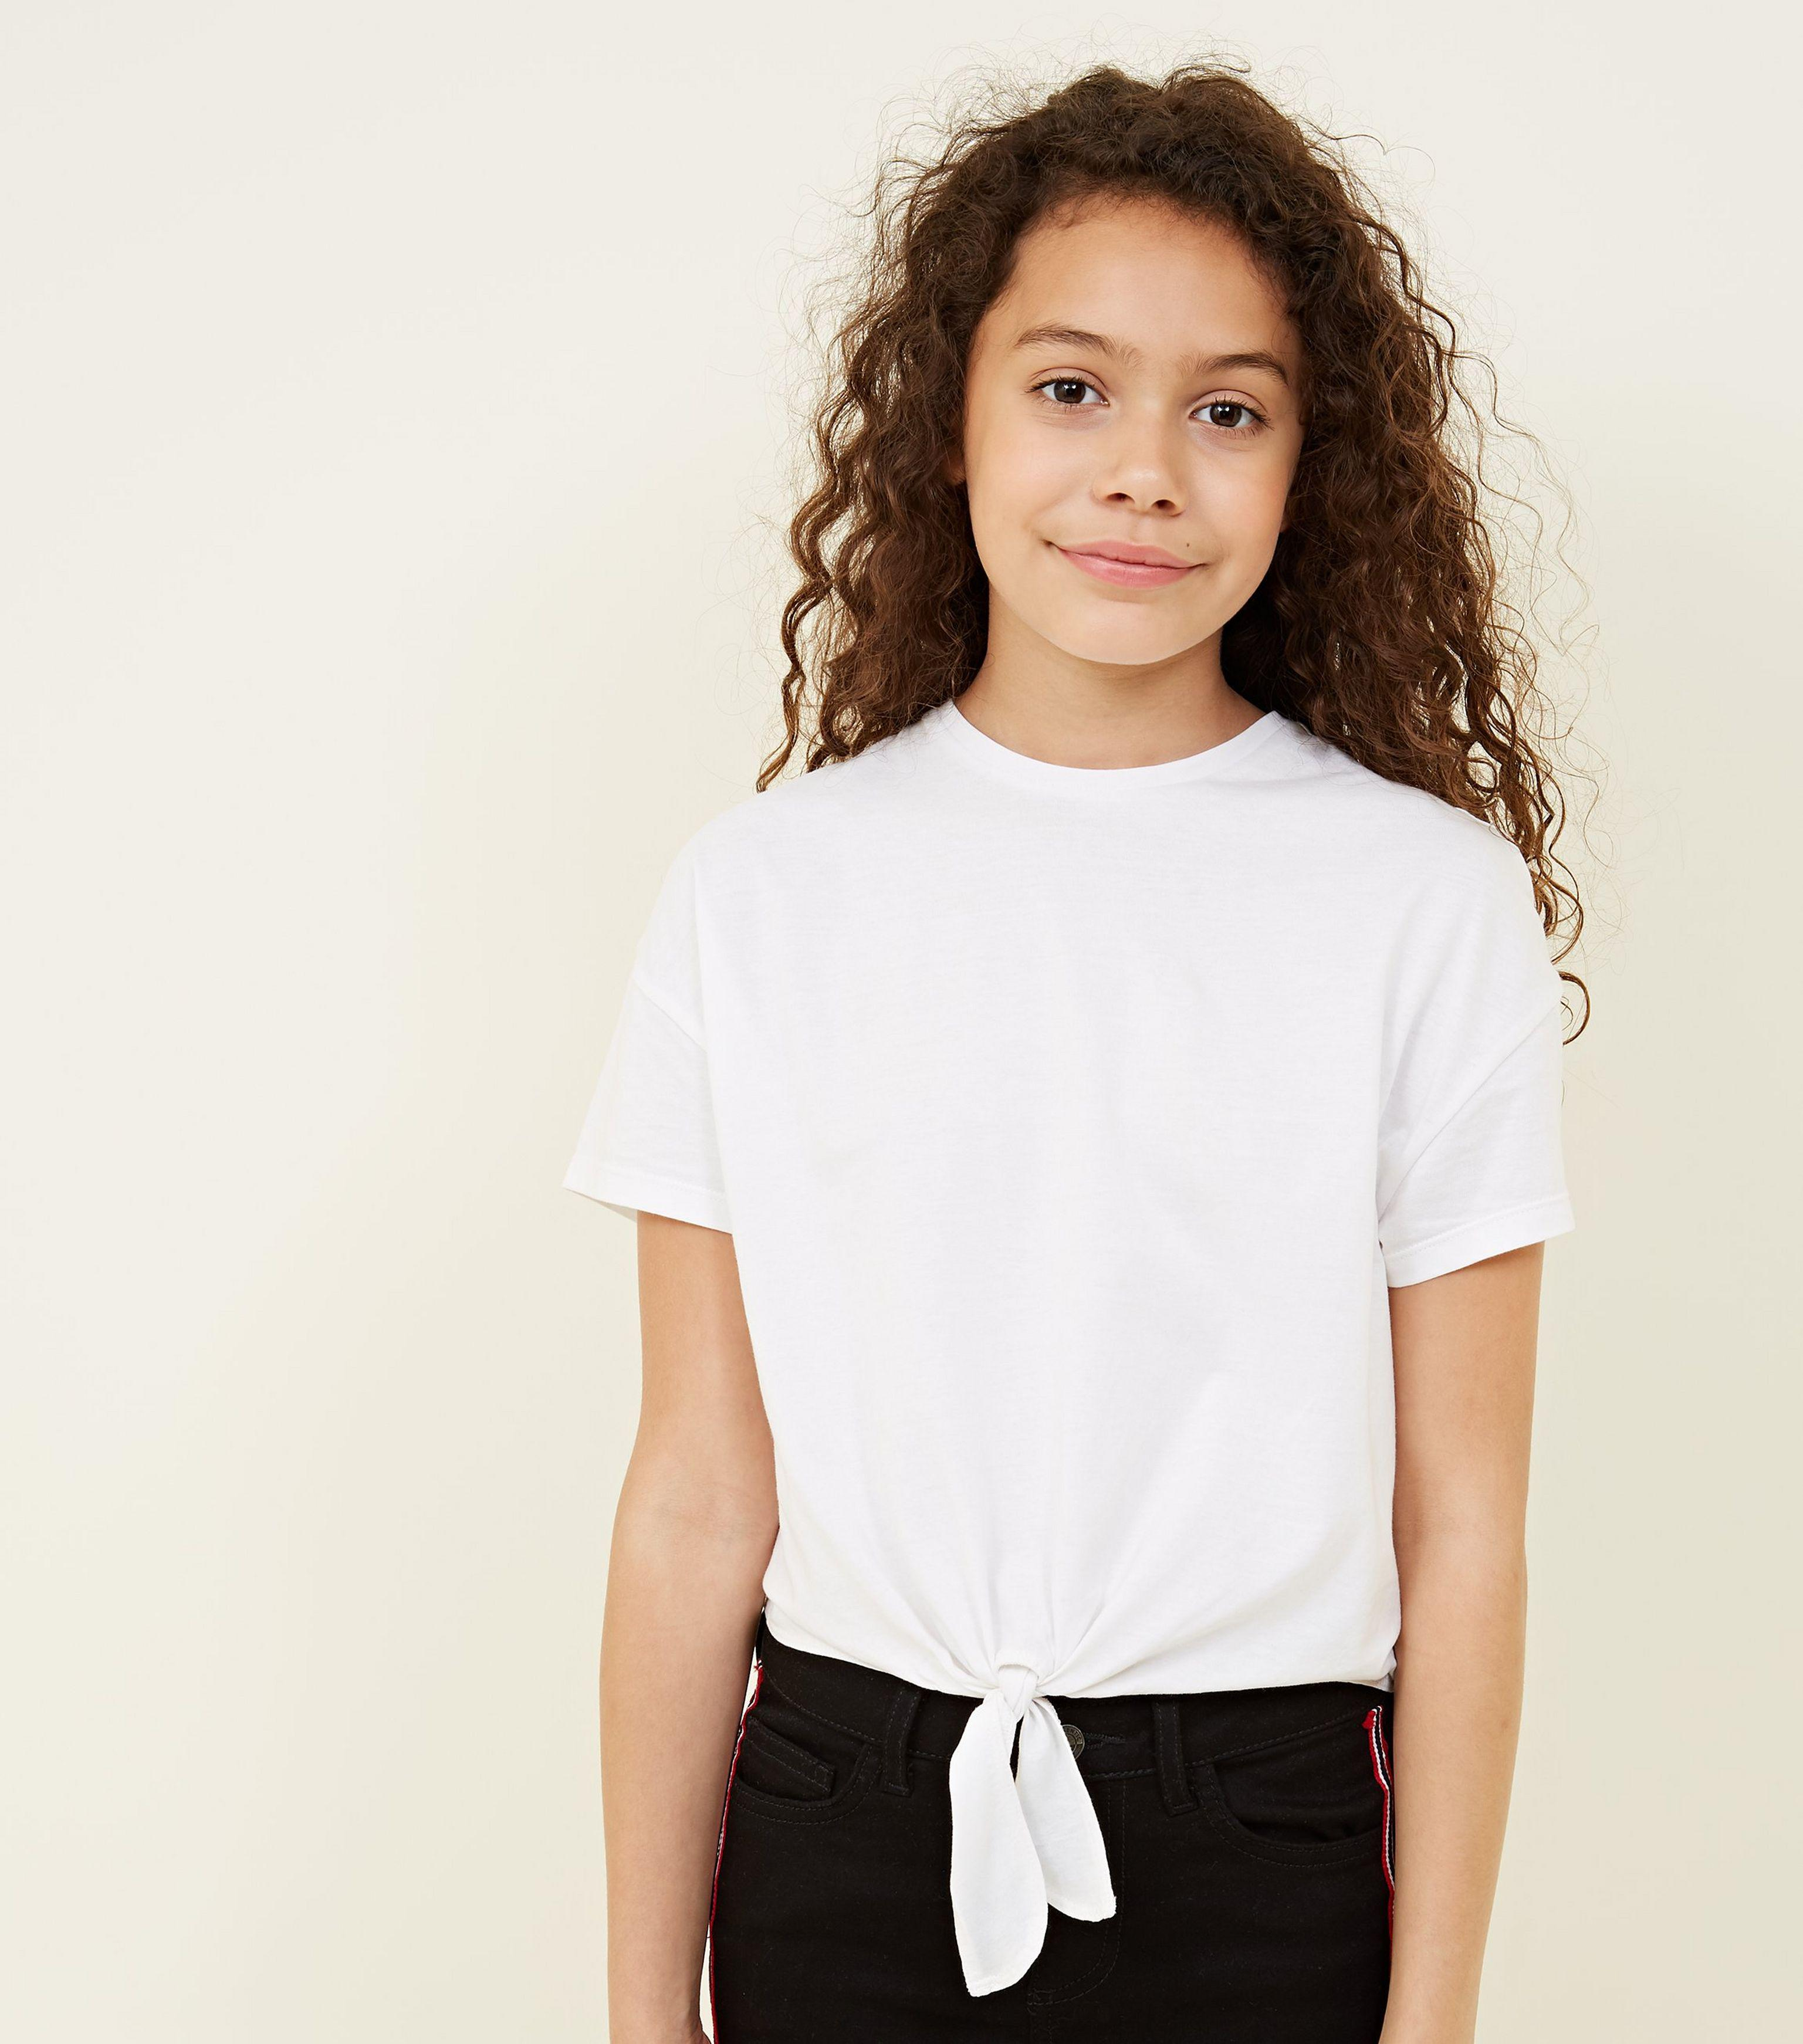 95946a9bdd8b5 New Look Girls White Tie Front T-shirt in White - Lyst